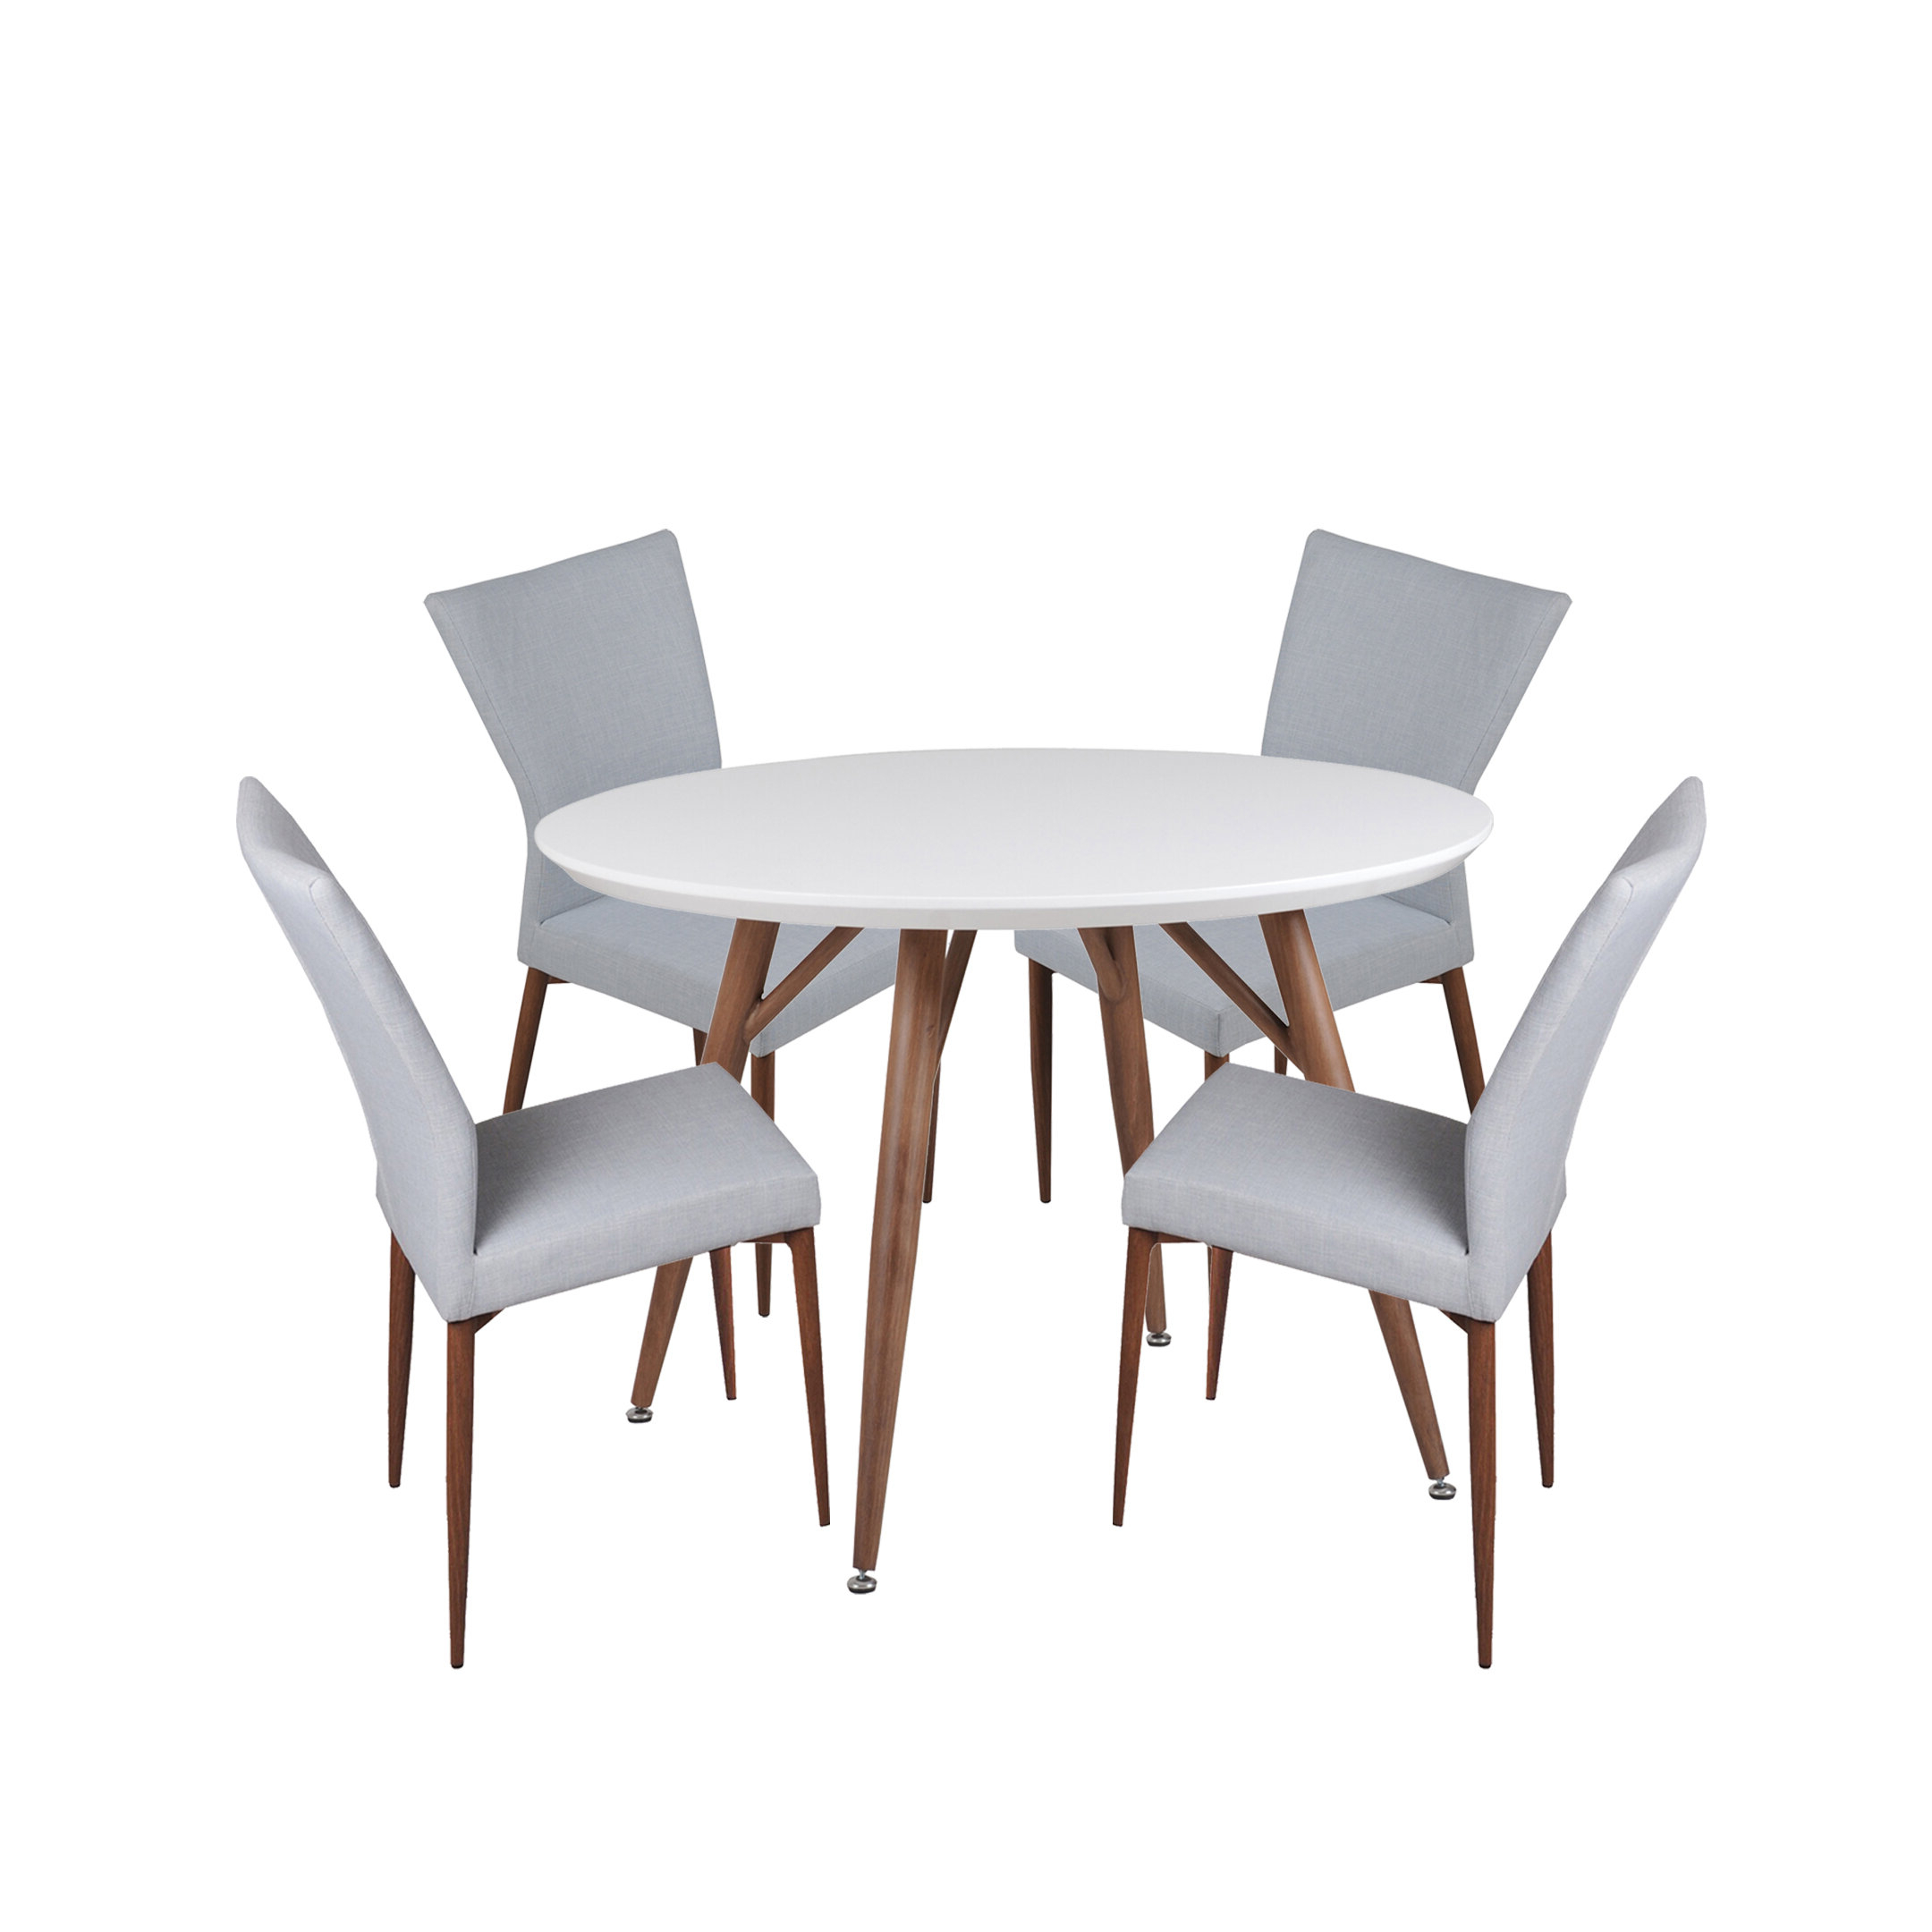 Well Known 5 Piece Breakfast Nook Dining Sets Regarding Brandyn 5 Piece Breakfast Nook Dining Set (View 17 of 20)